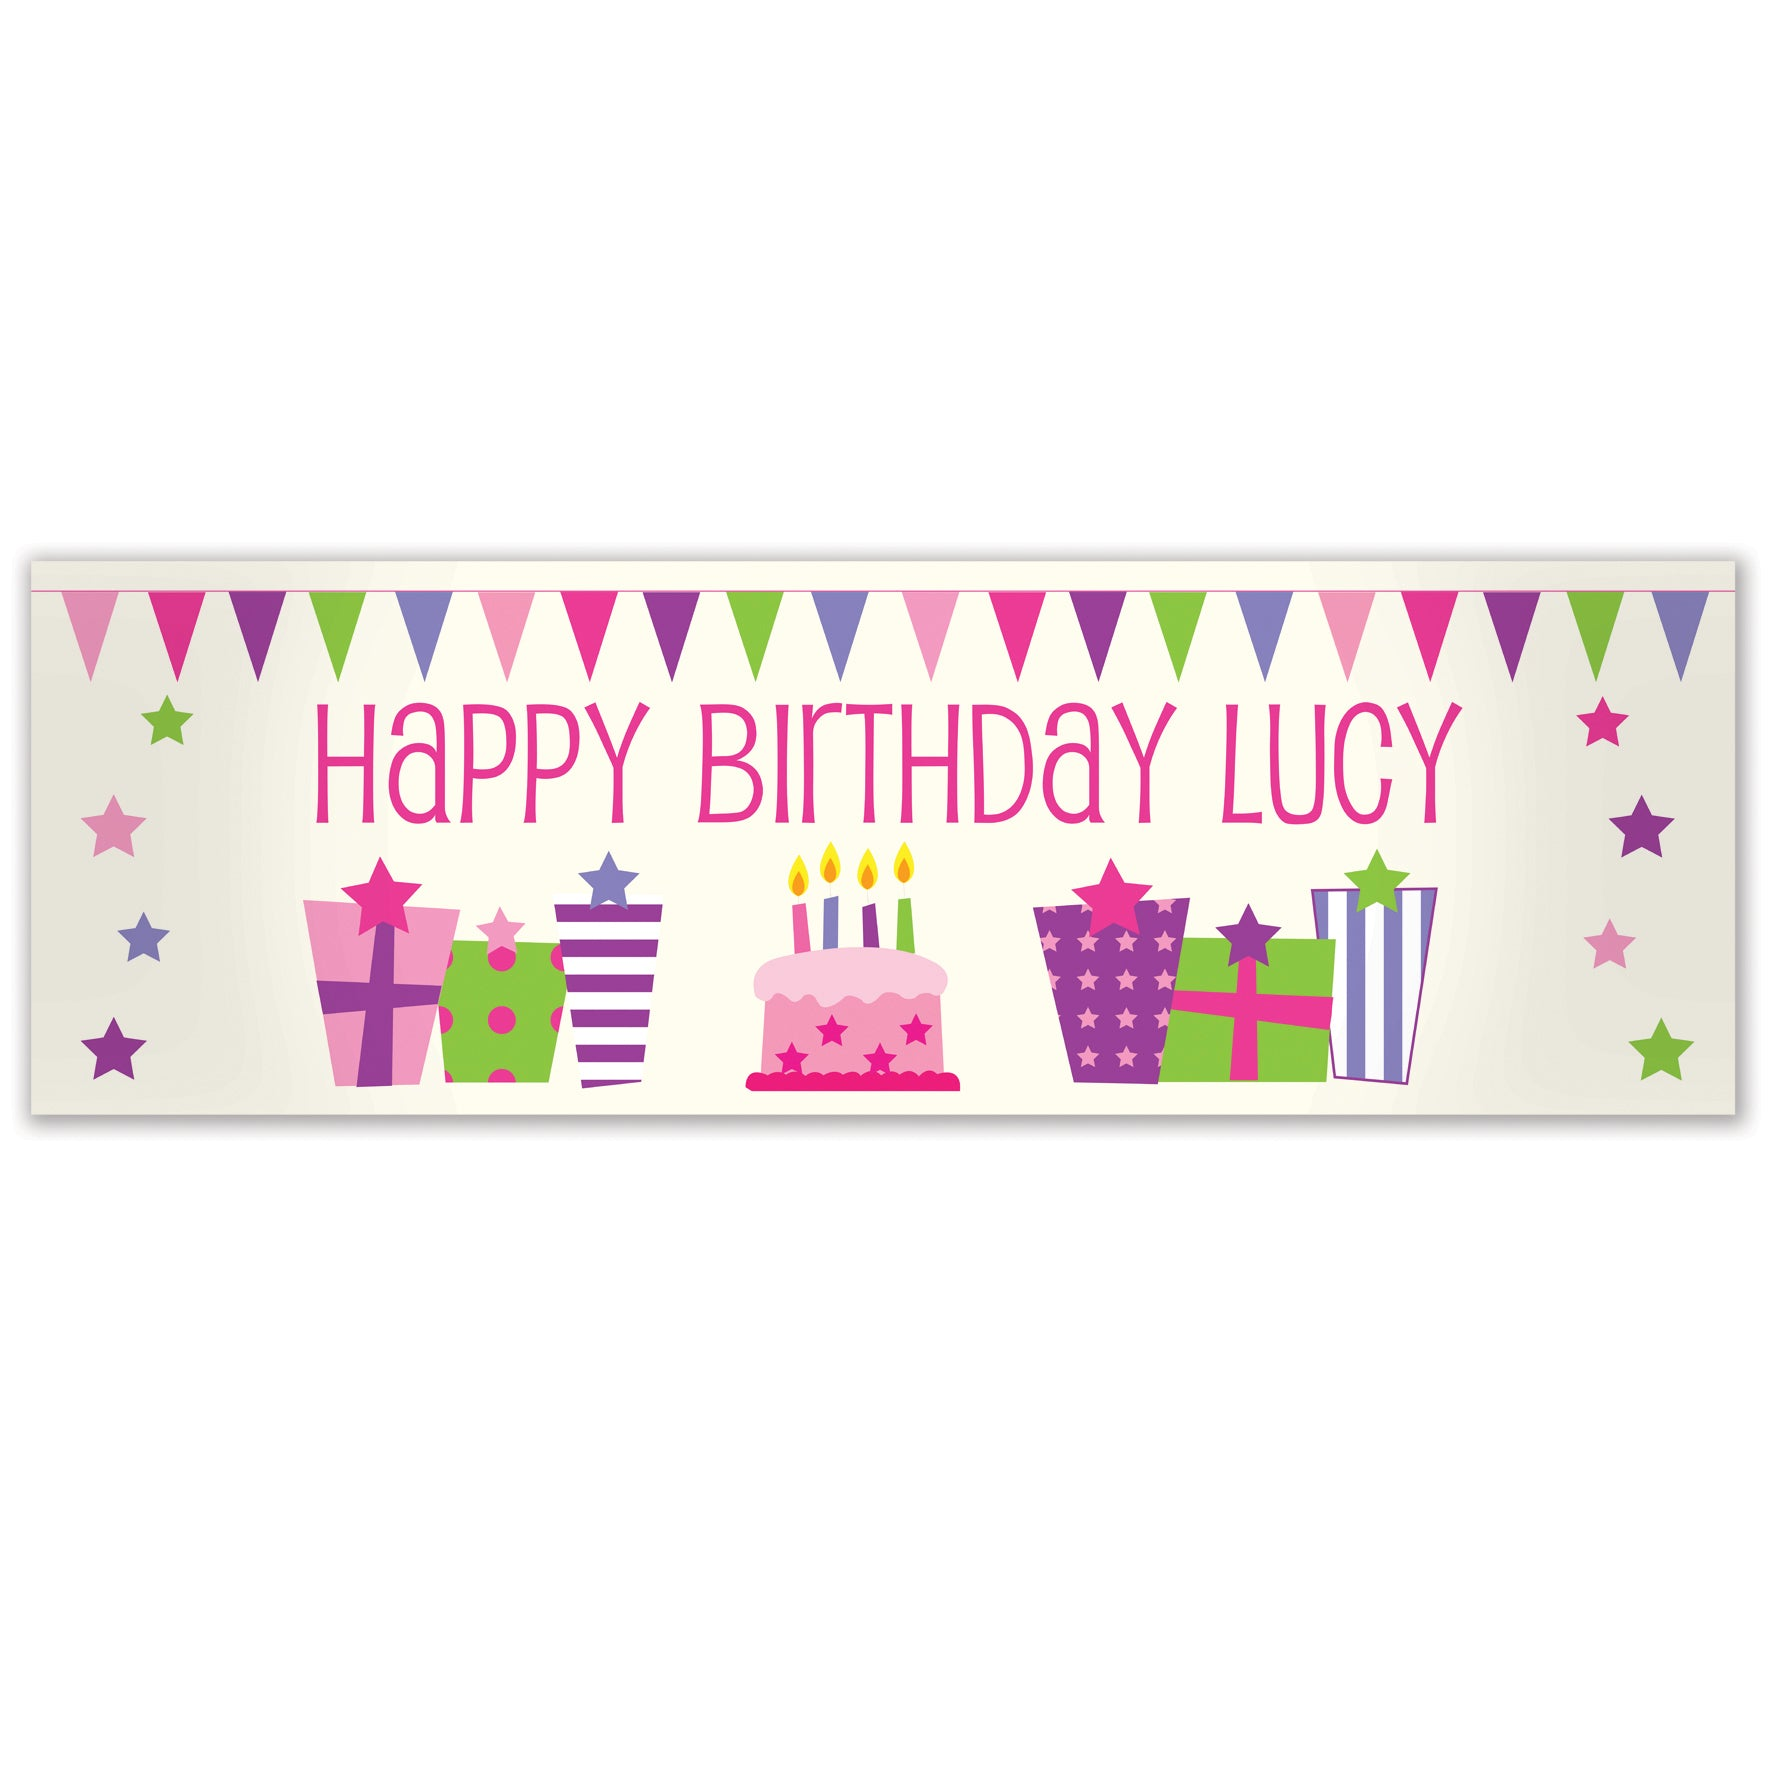 Personalised Female Presents Banner, Party Supplies by Low Cost Gifts